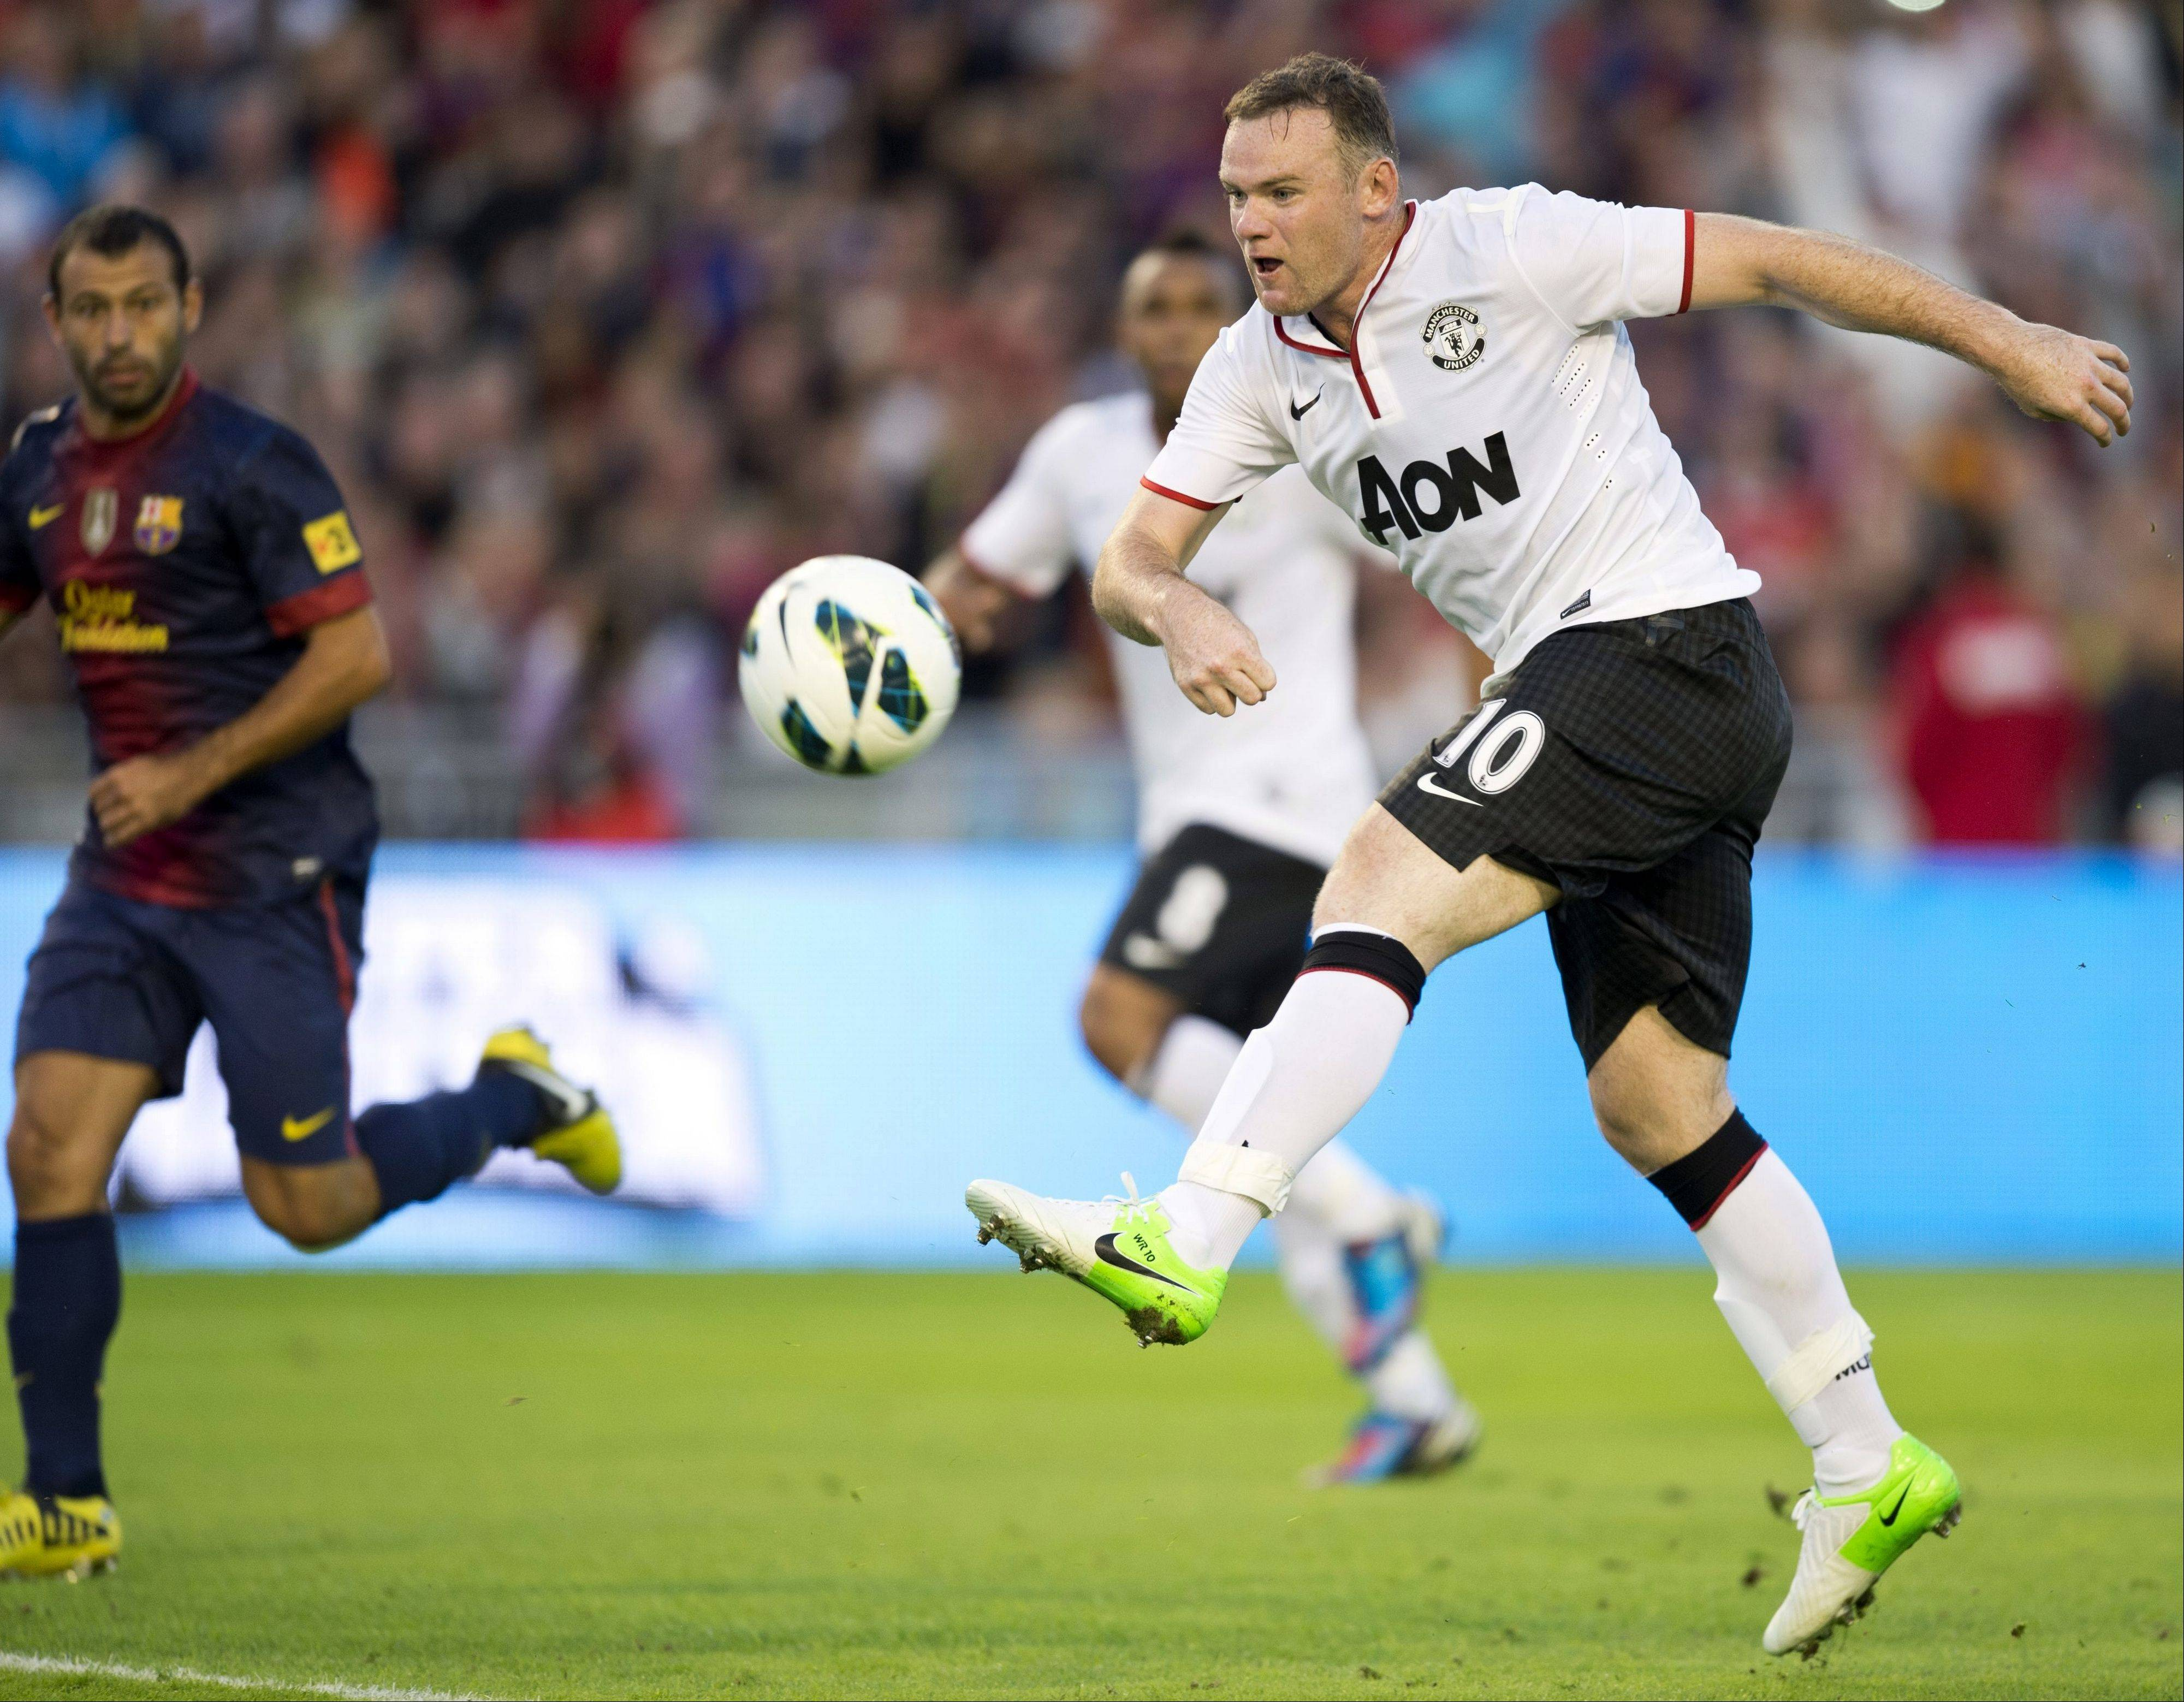 Manchester United�s Wayne Rooney, right, kicks the ball as Barcelona�s Javier Mascherano, left, defends, during a friendly soccer match in Goteborg, Sweden, Aug. 8. Manchester United is readying for its debut on the New York Stock Exchange on Friday.